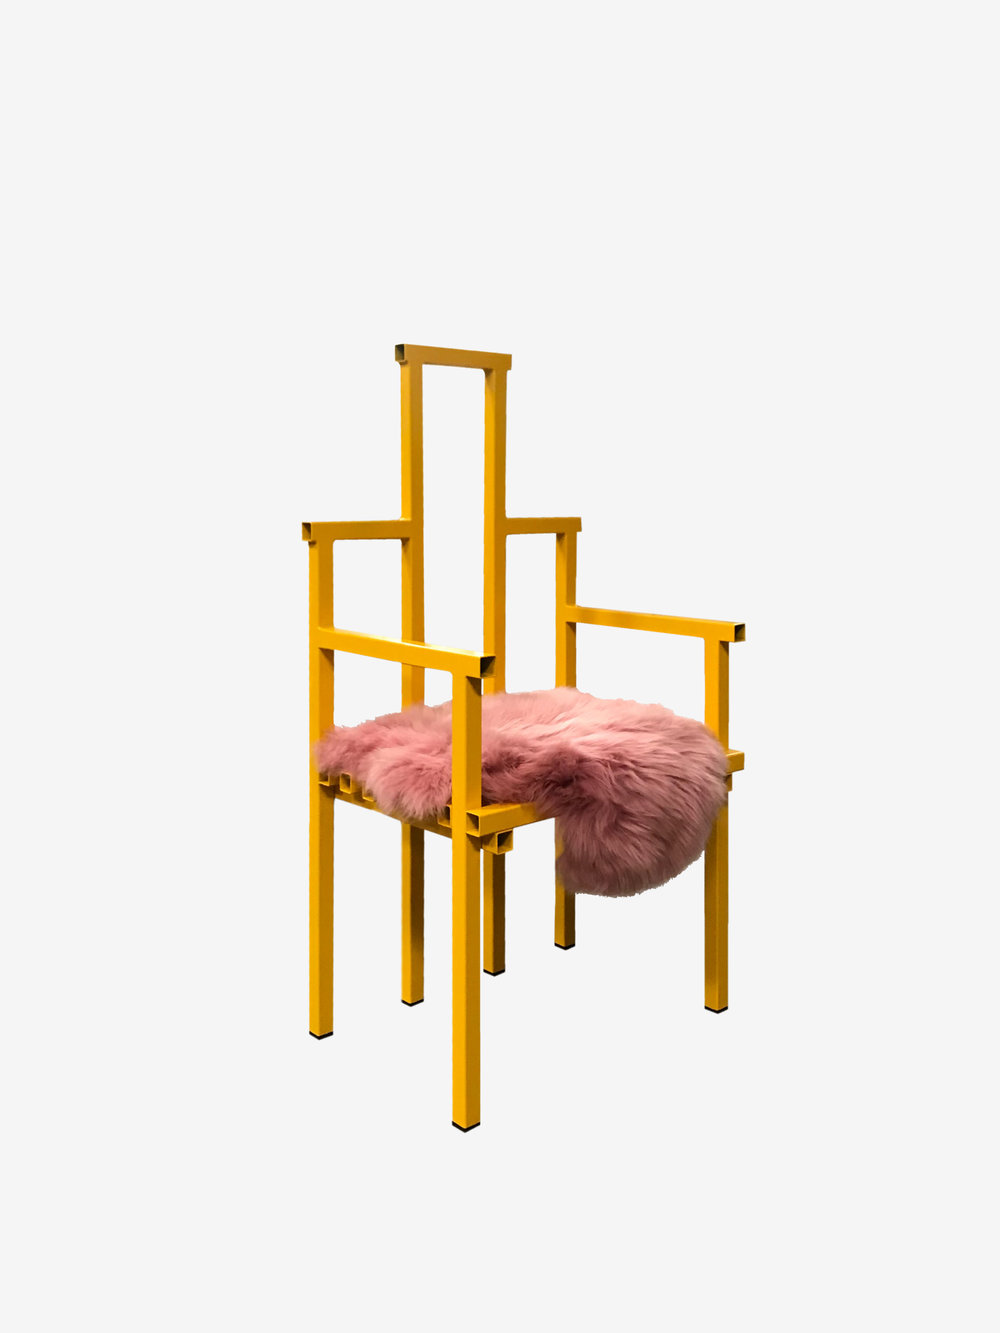 PEACH MELBA CHAIR - by Fredrik Paulsen Materials: Powder Coated Steel, Sheep Skin Dimensions: H: 110 x D: 46 cm x W: 56 cm,Seat Height: 43 cm 2018 Price on request